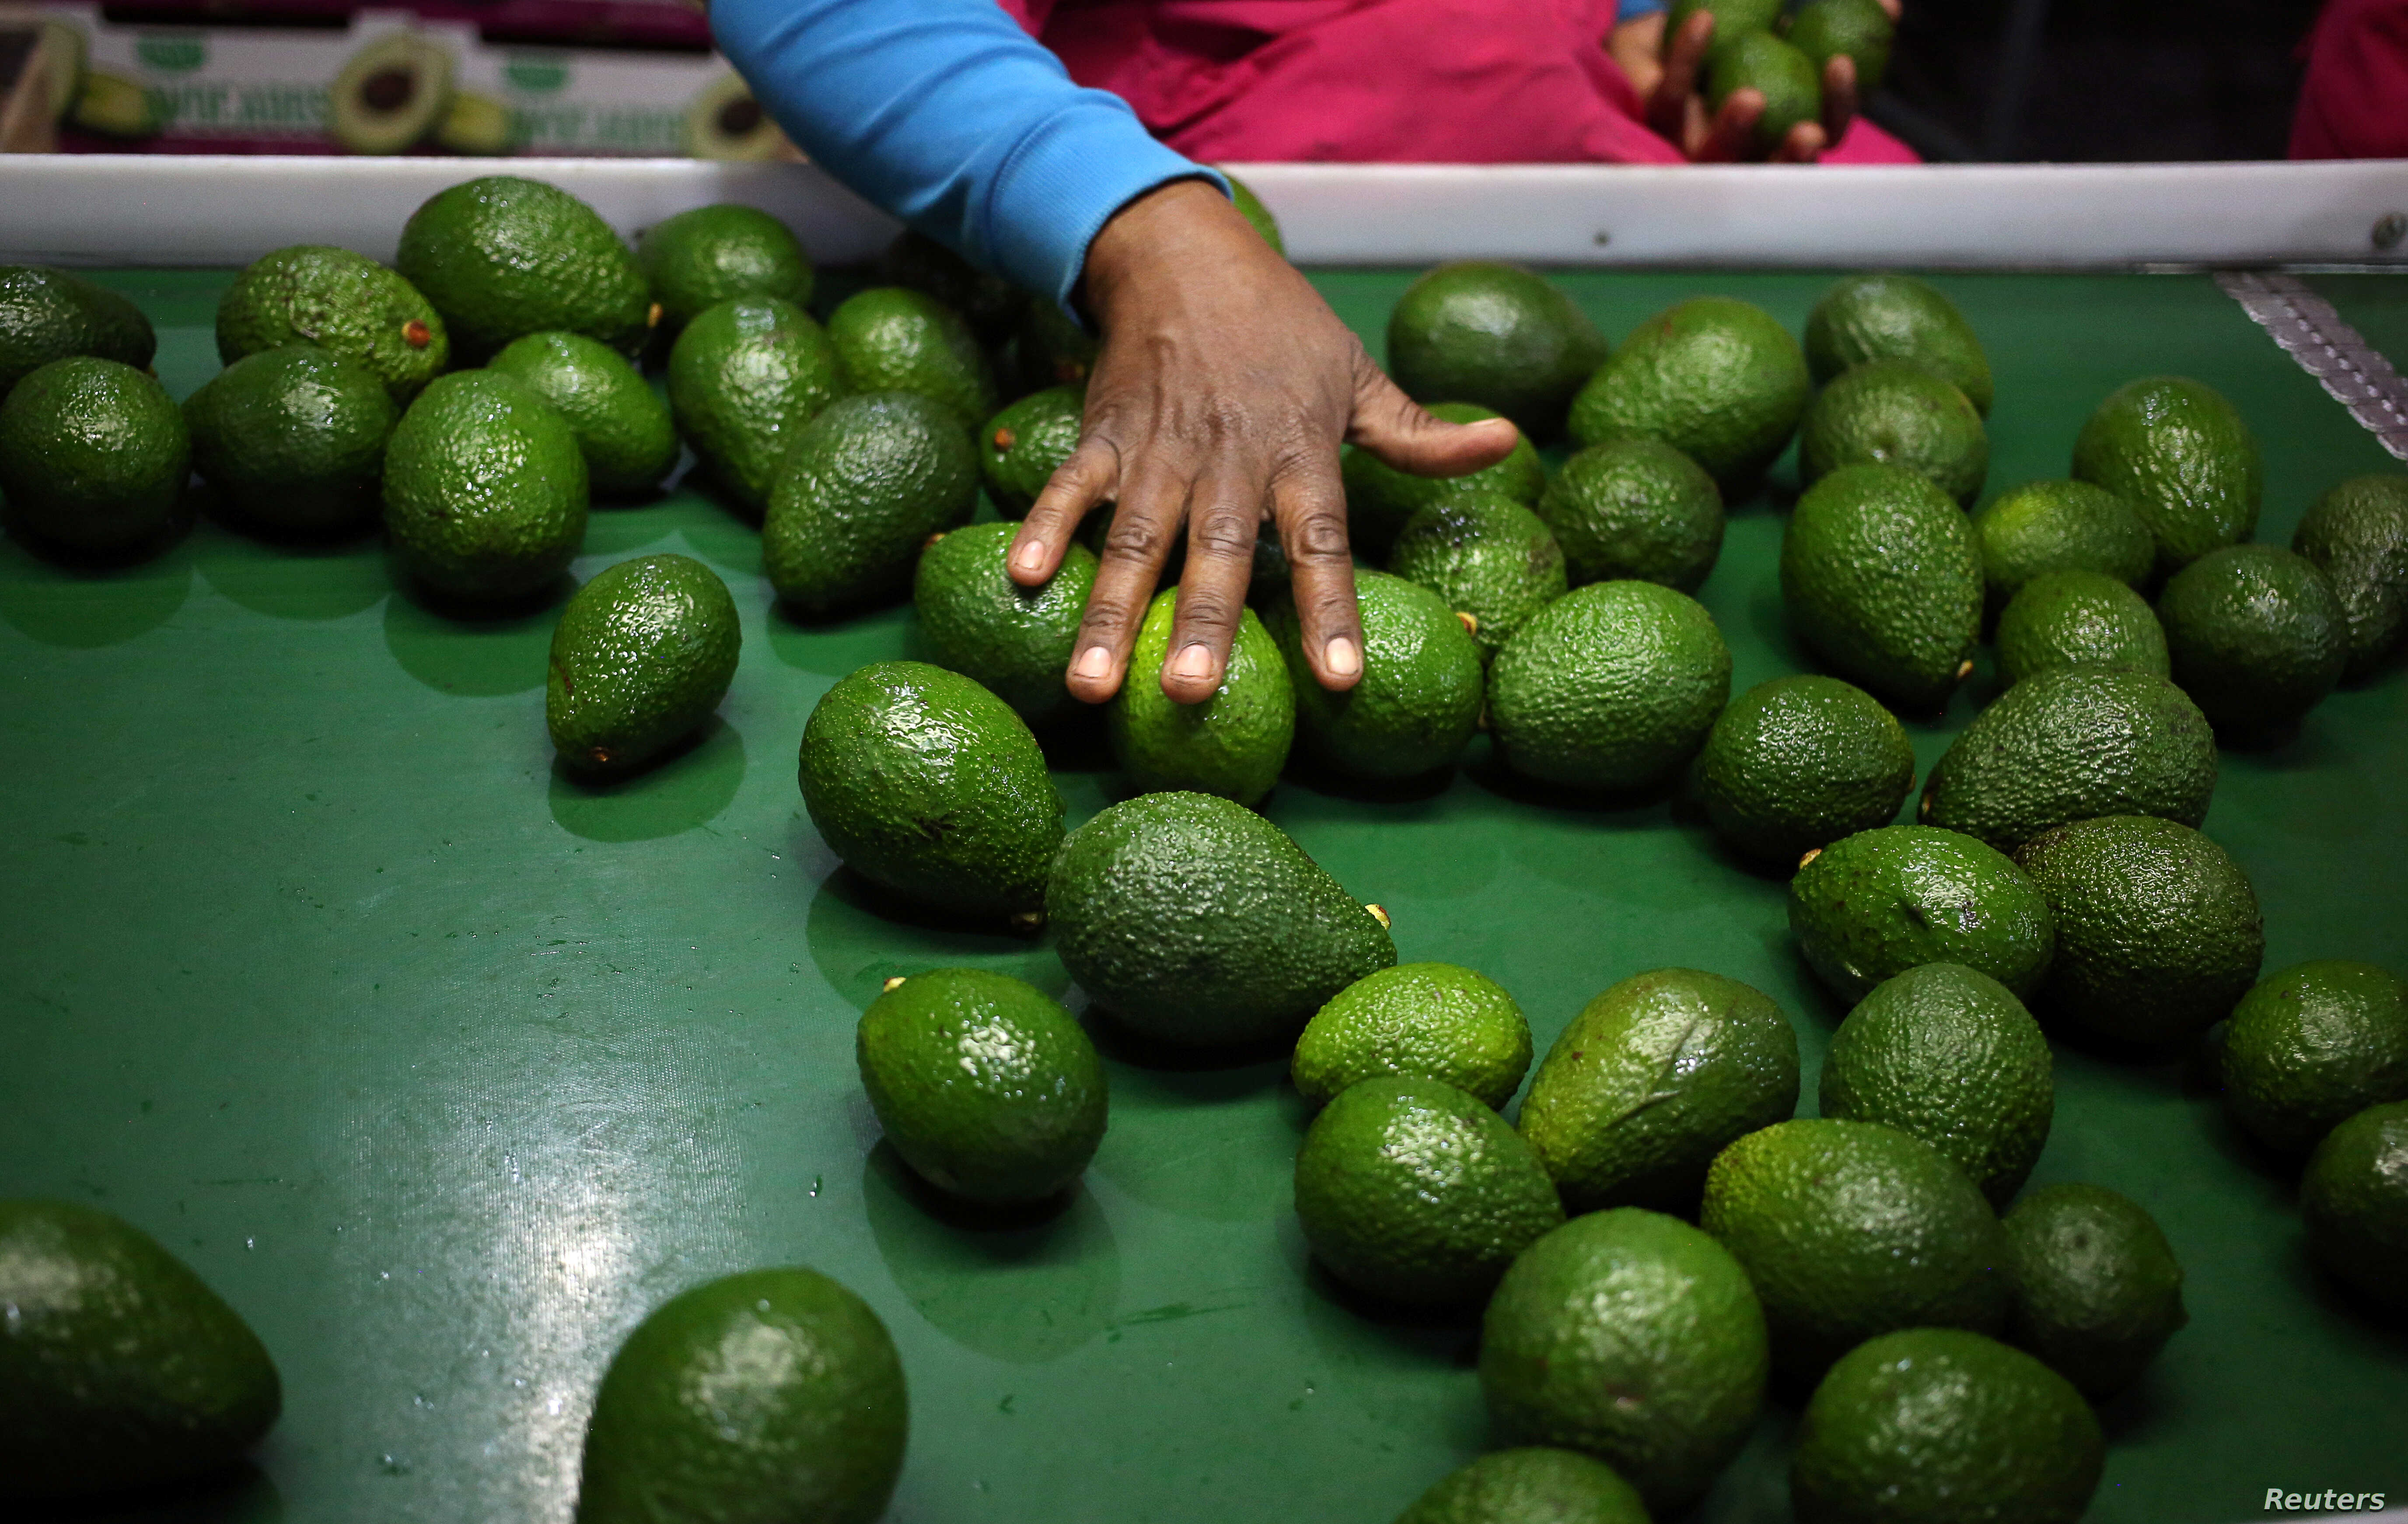 Kenya's Avocado Farmers Eye Chinese Market, But There's a